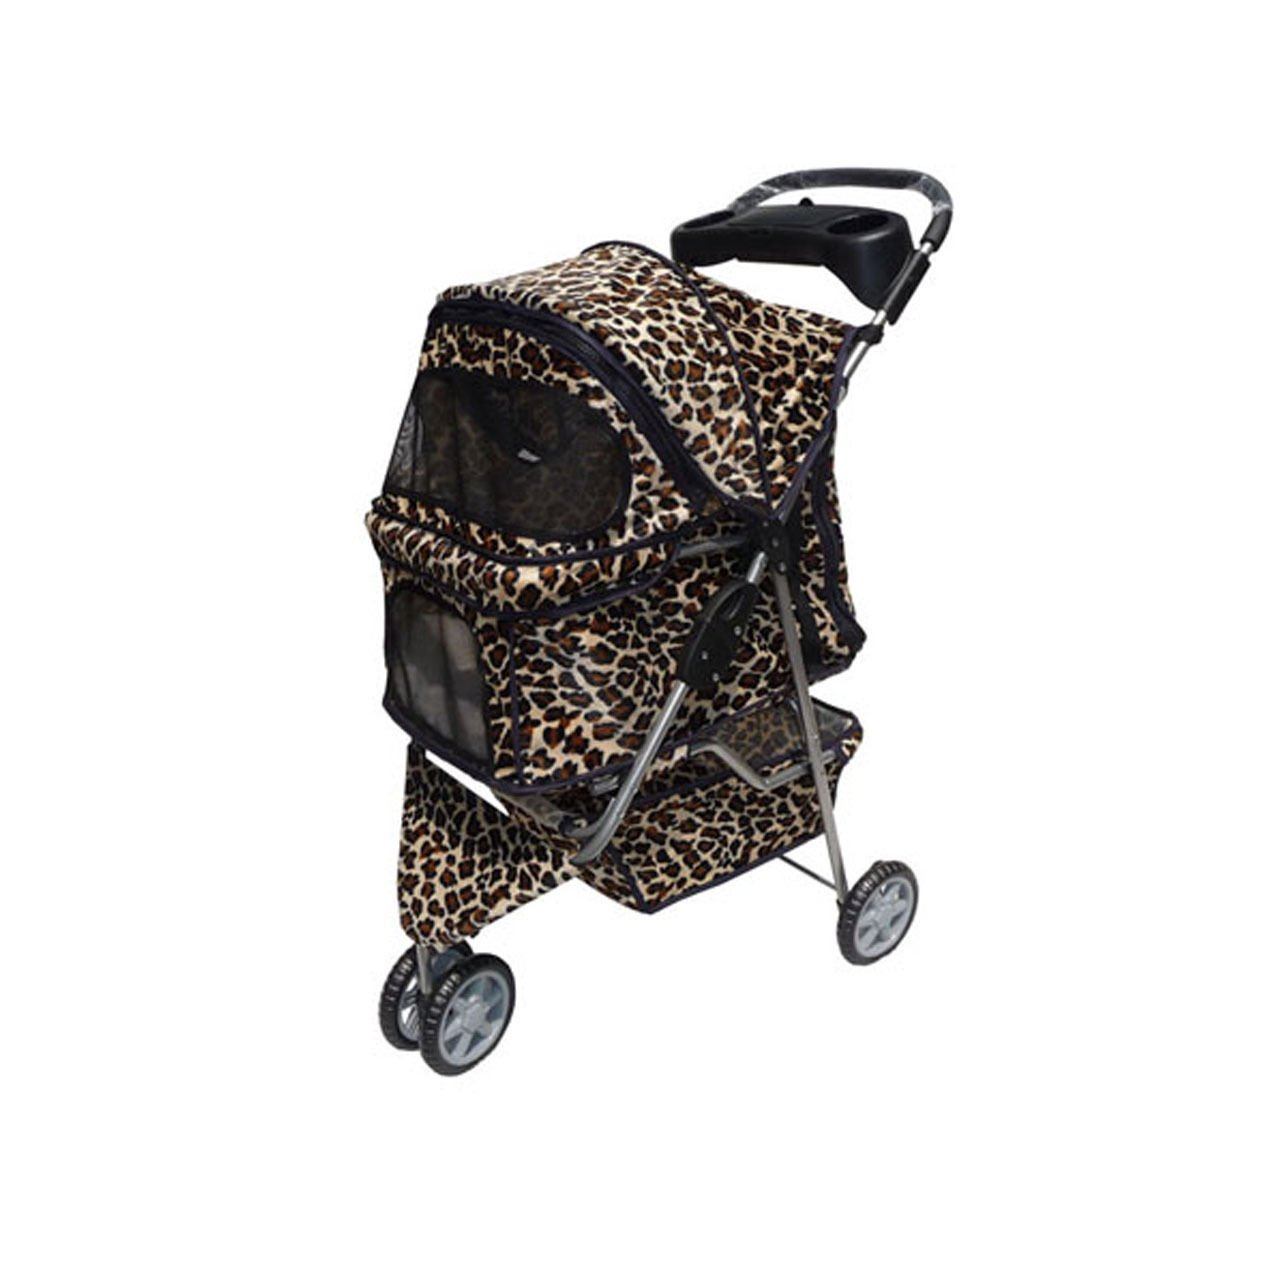 Leopard Skin 3 Wheels Pet Dog Cat Stroller Free RainCover